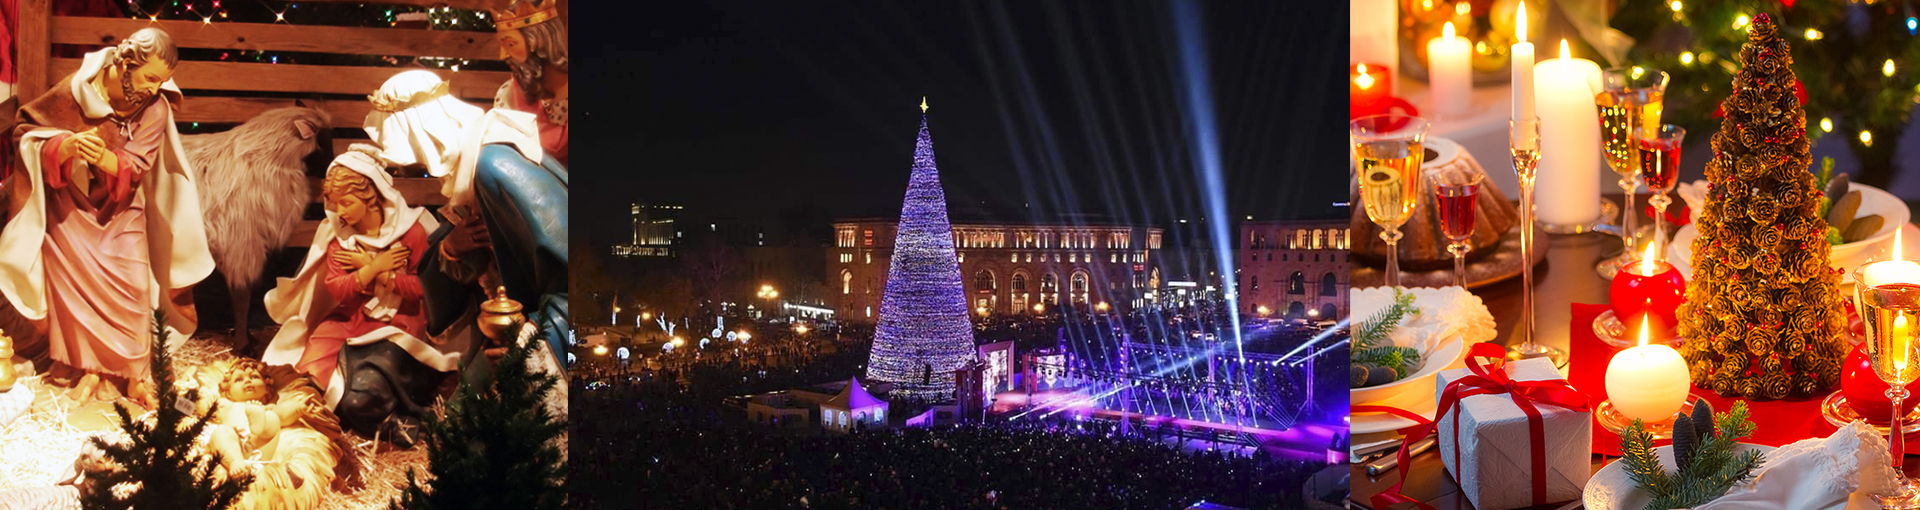 The Armenian New Year and Christmas